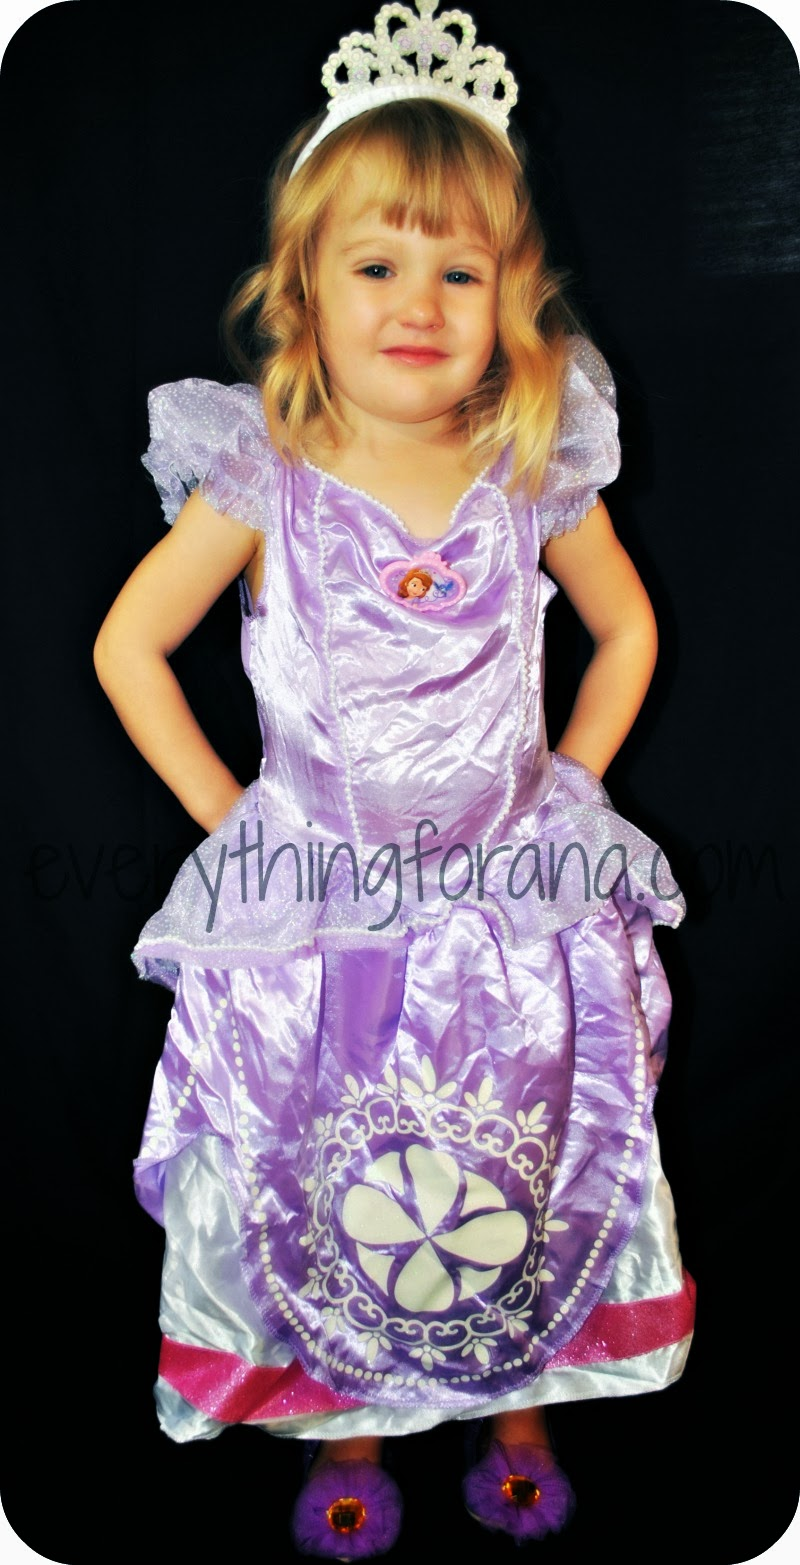 everything for ana: review: sofia the first princess toddler costume